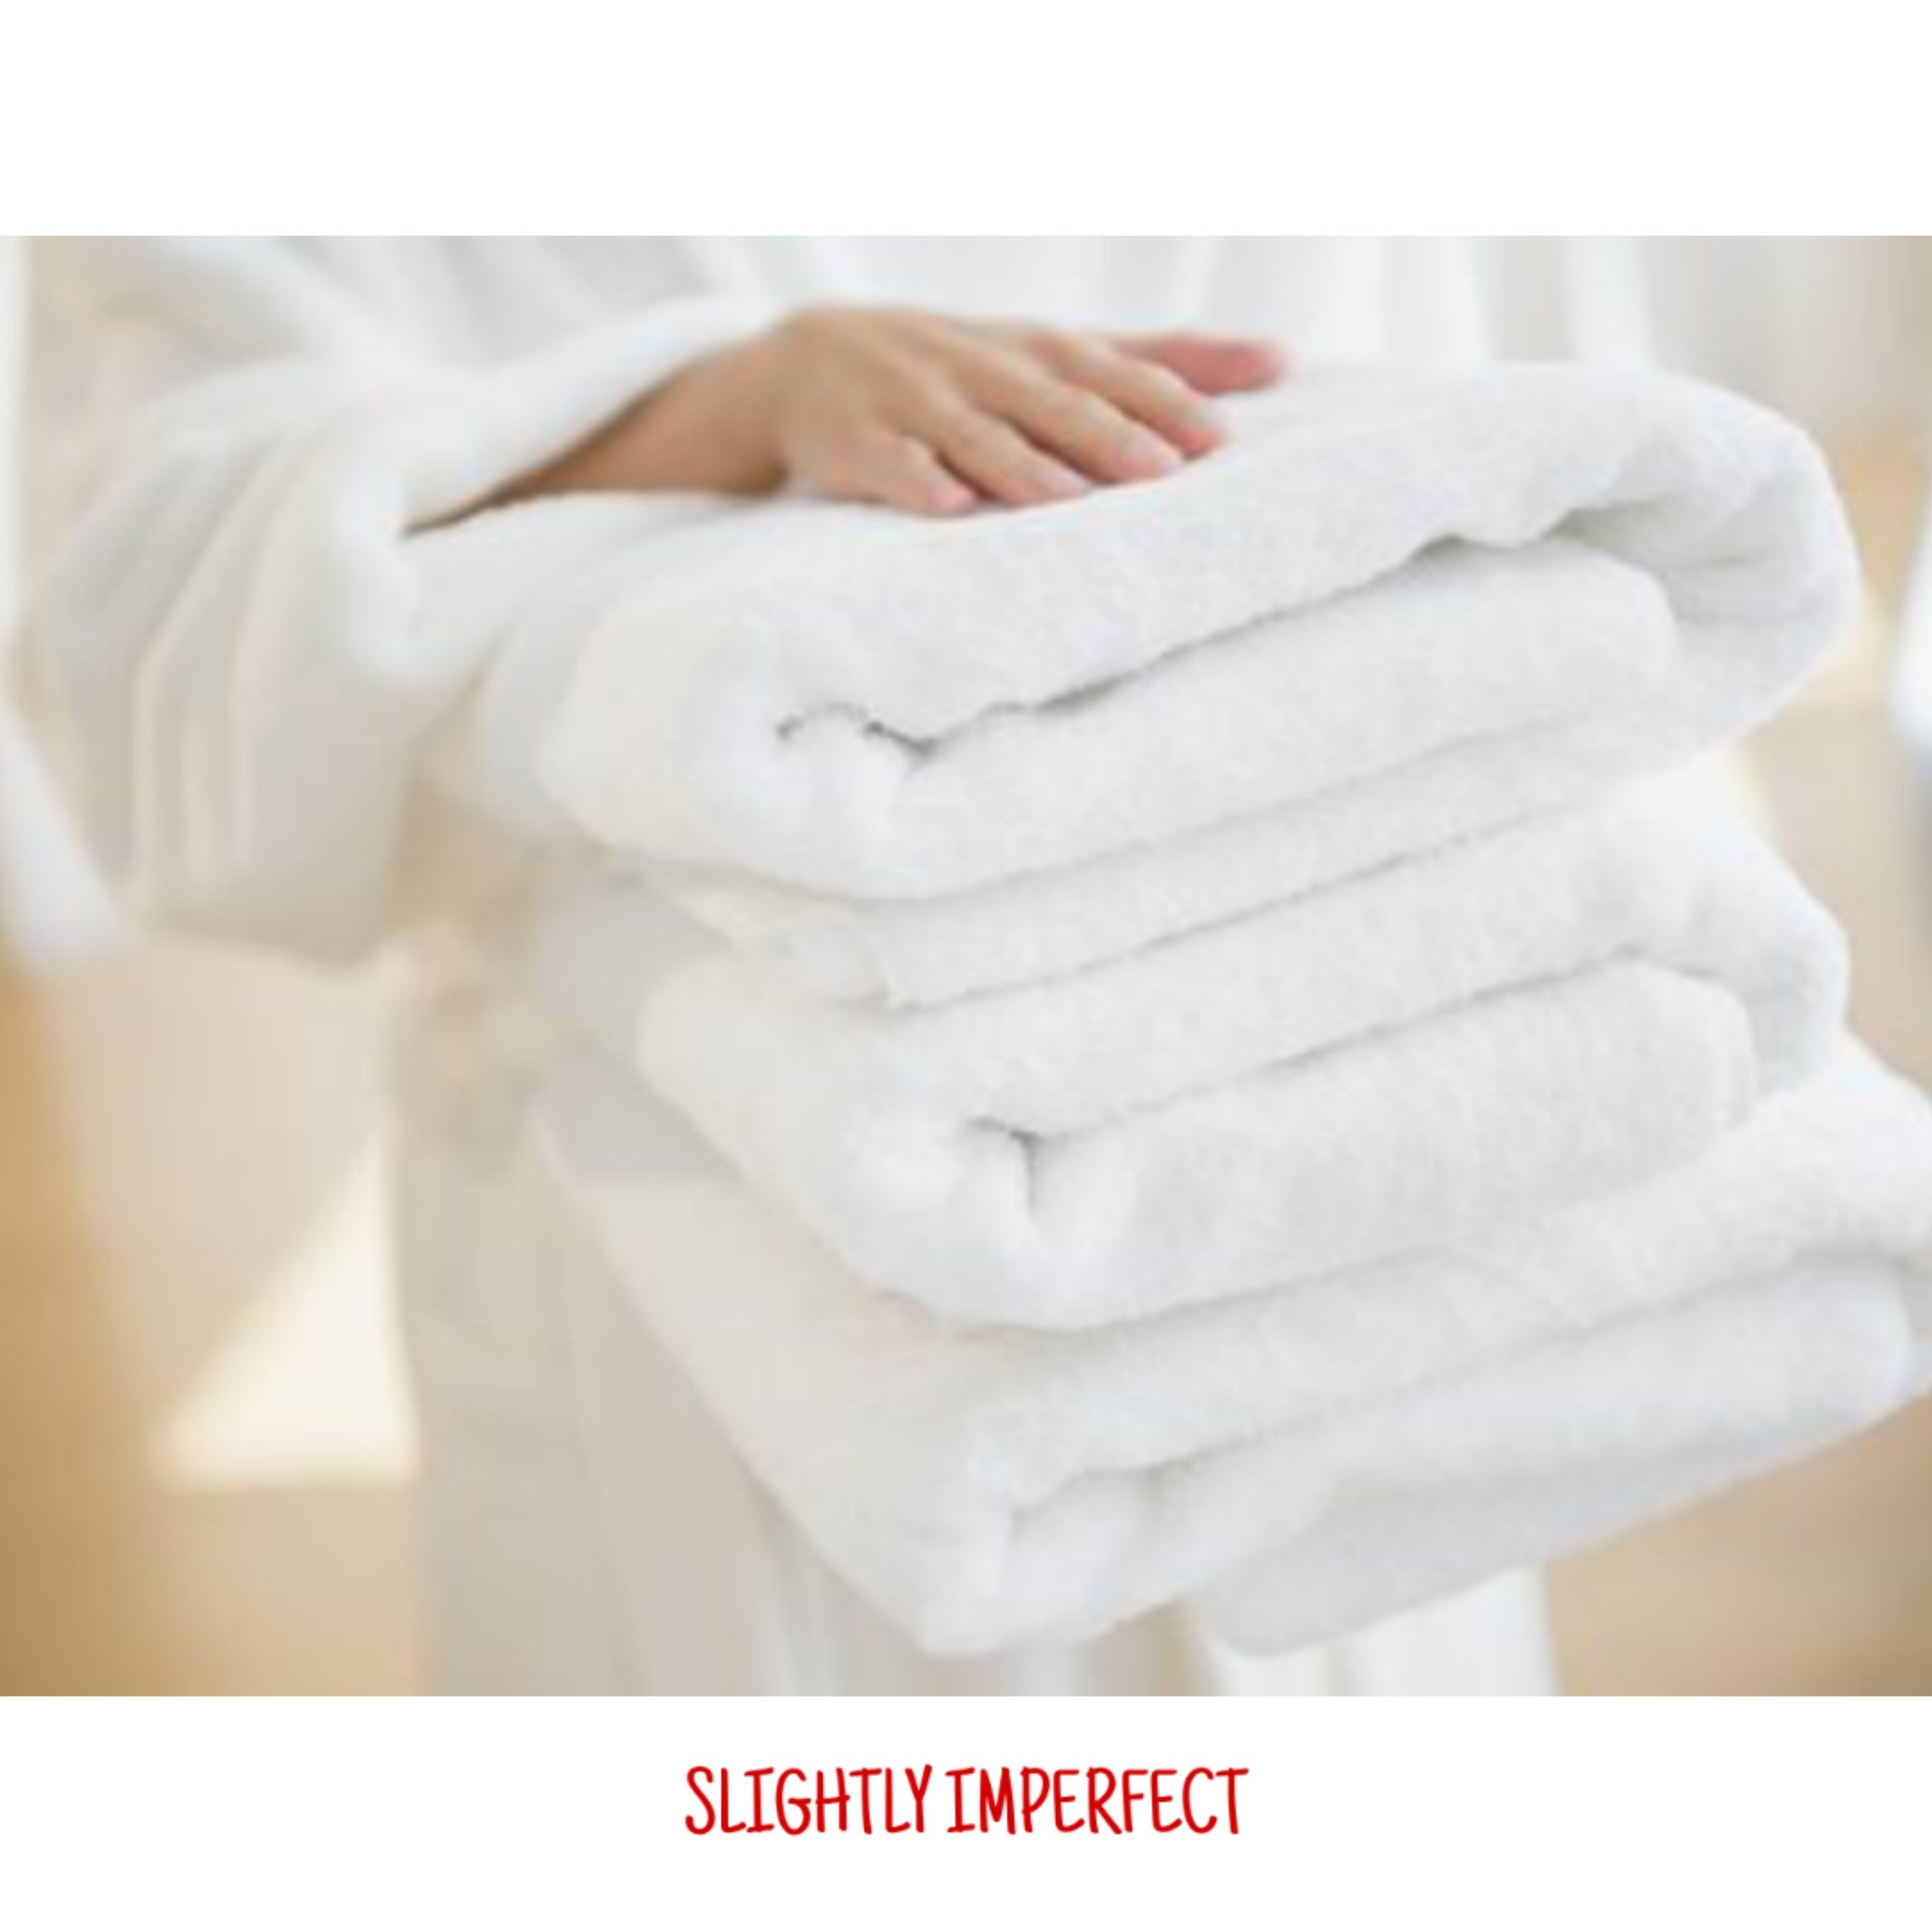 Bundle of 20 Snag Free Imperfect Bath Sheets